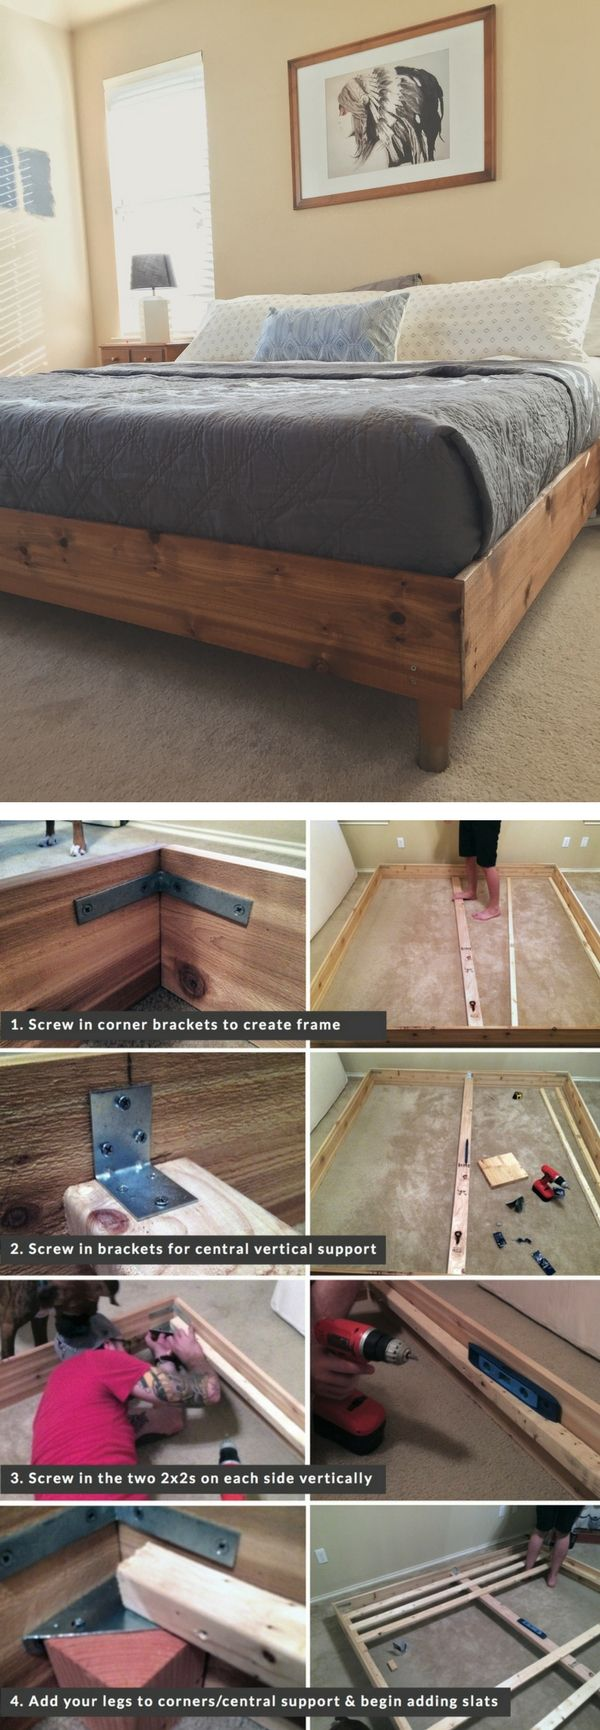 17 Wonderful Diy Platform Beds | Platform beds, Bedrooms and DIY ...